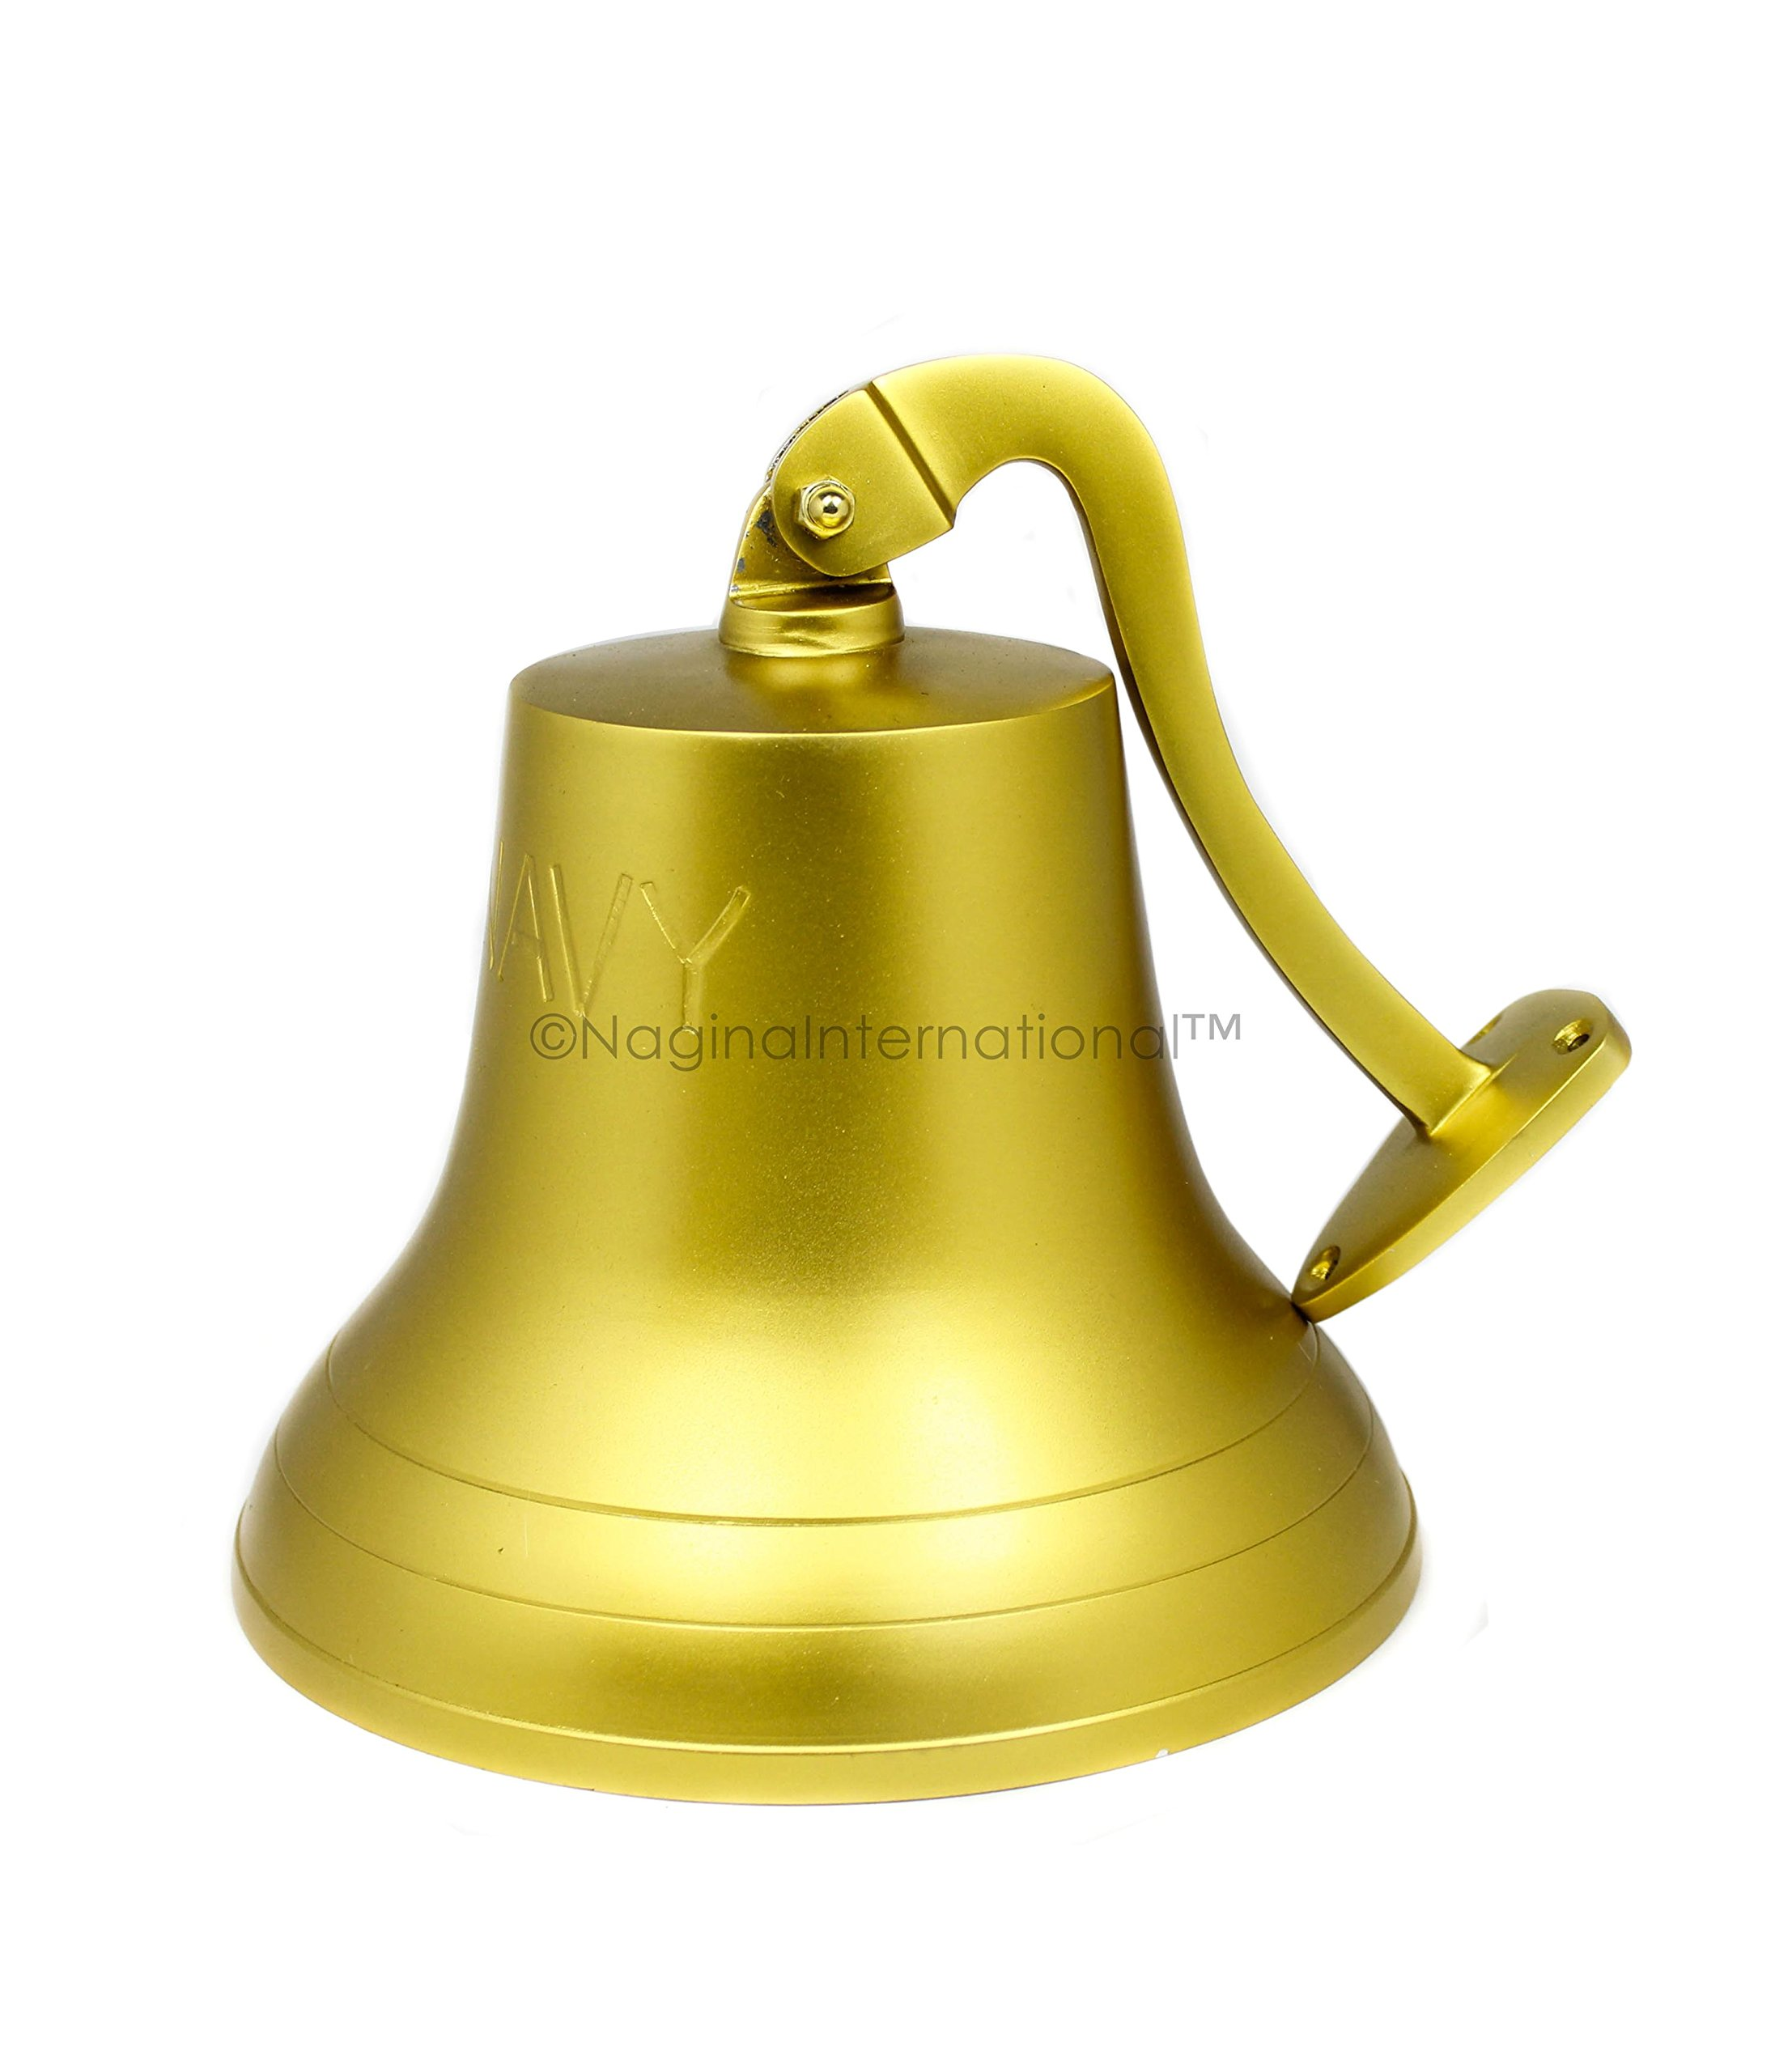 Nagina International 11'' Solid Brass Plated Finished Polished Premium Nautical Boat's Bell | Maritime Navy Ship's Decor & Gifts